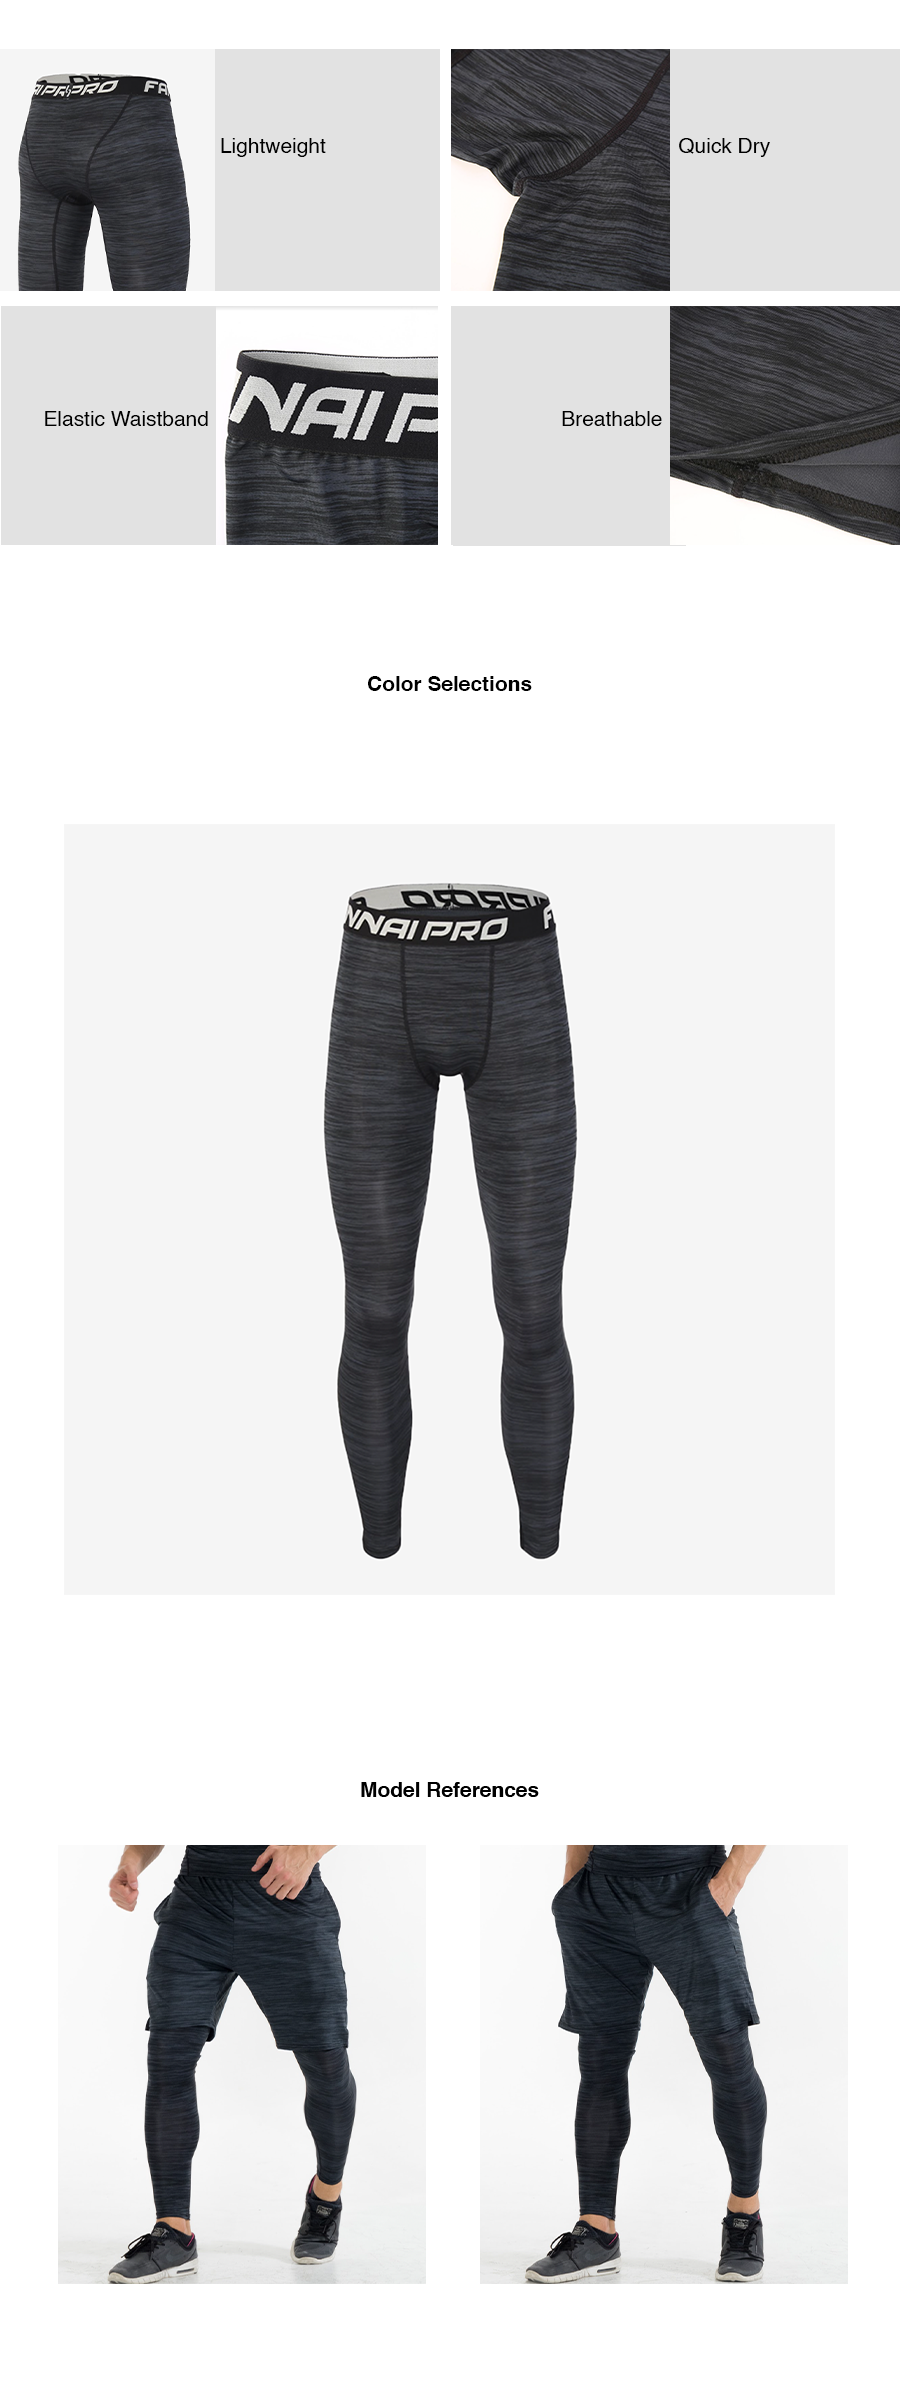 Quick Dry Compression Tights